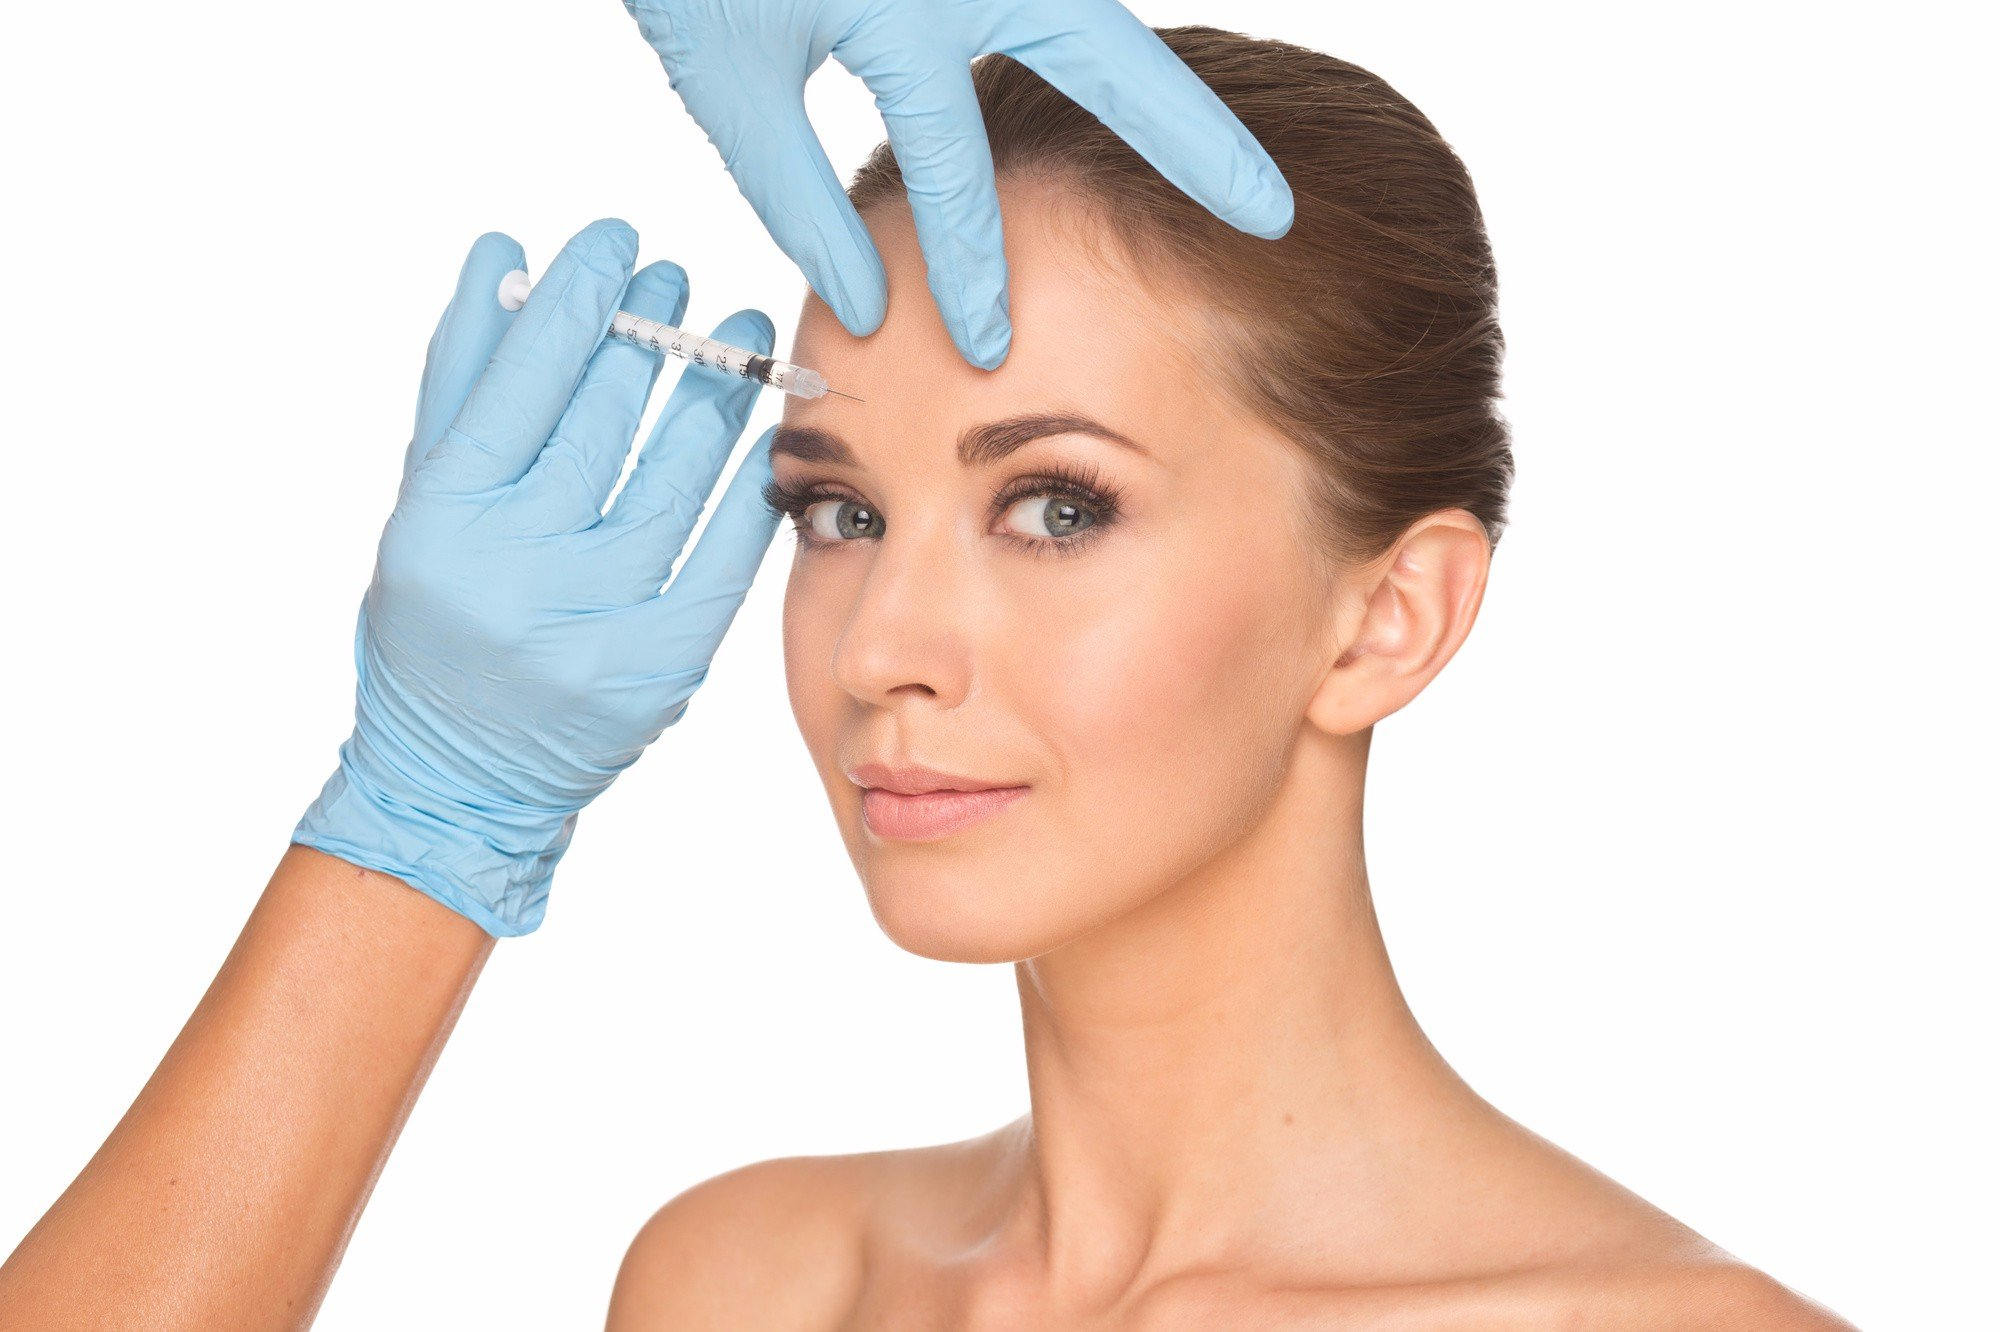 How long does botox last how to know when to book your next session so just how long does botox last if youre looking for answers to all your basic botox questions follow this guide to fill you in on how often youll need solutioingenieria Choice Image